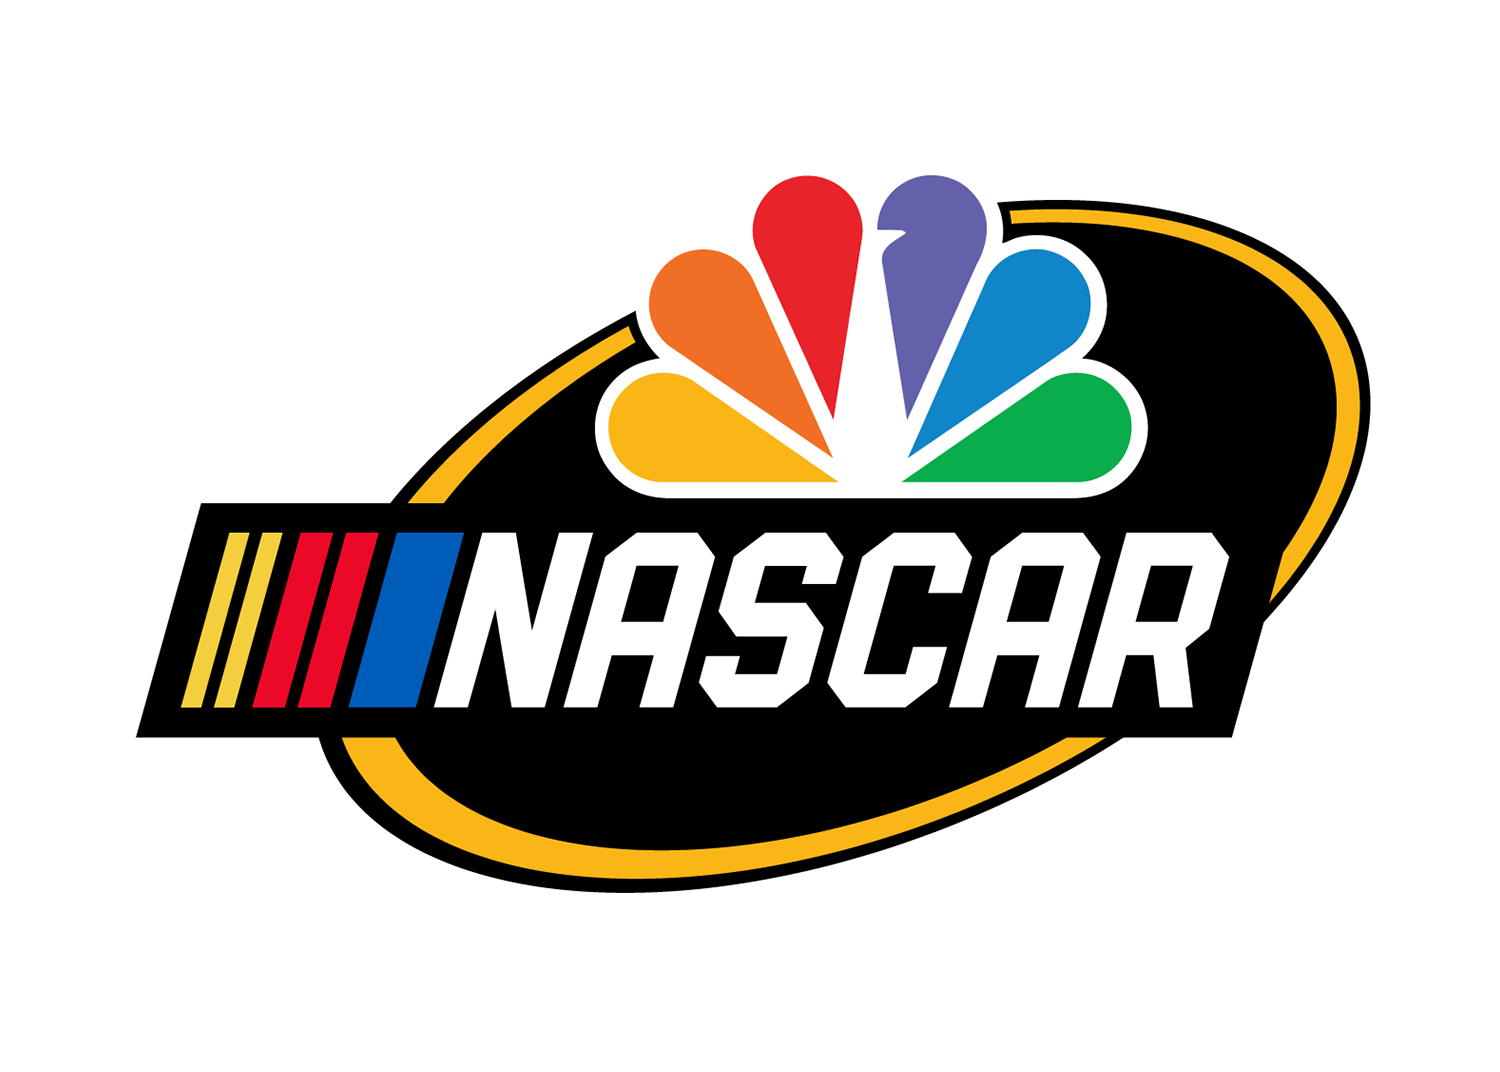 Nascar Ratings Hit Broadcast Tv Low At Phoenix Sports Media Watch